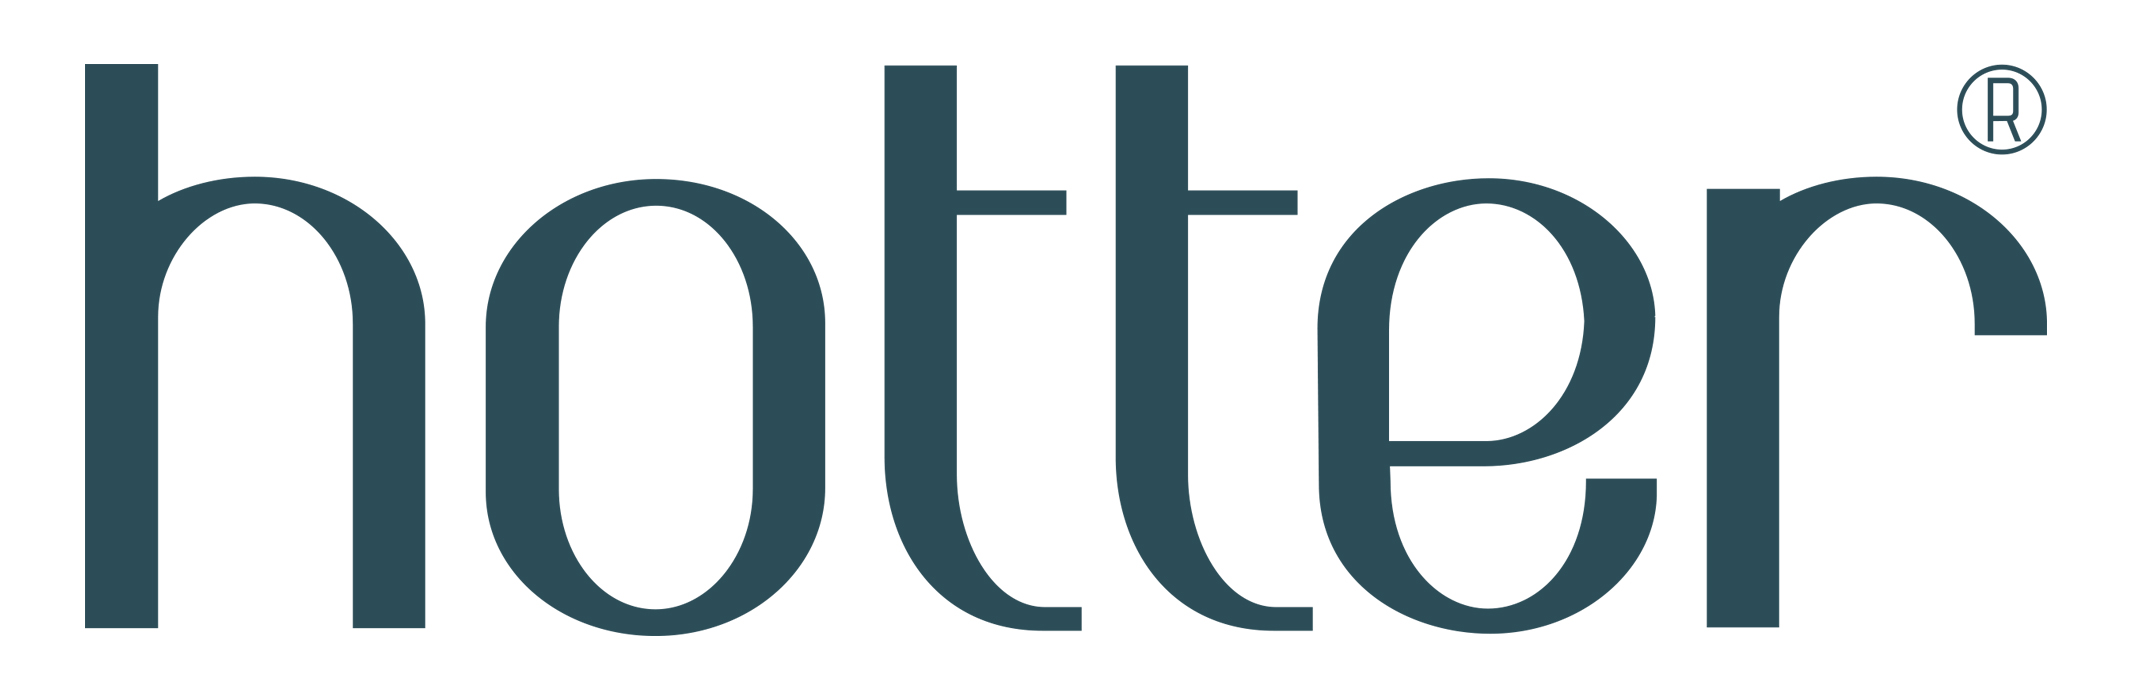 Hotter Shoes Cambridge Logo